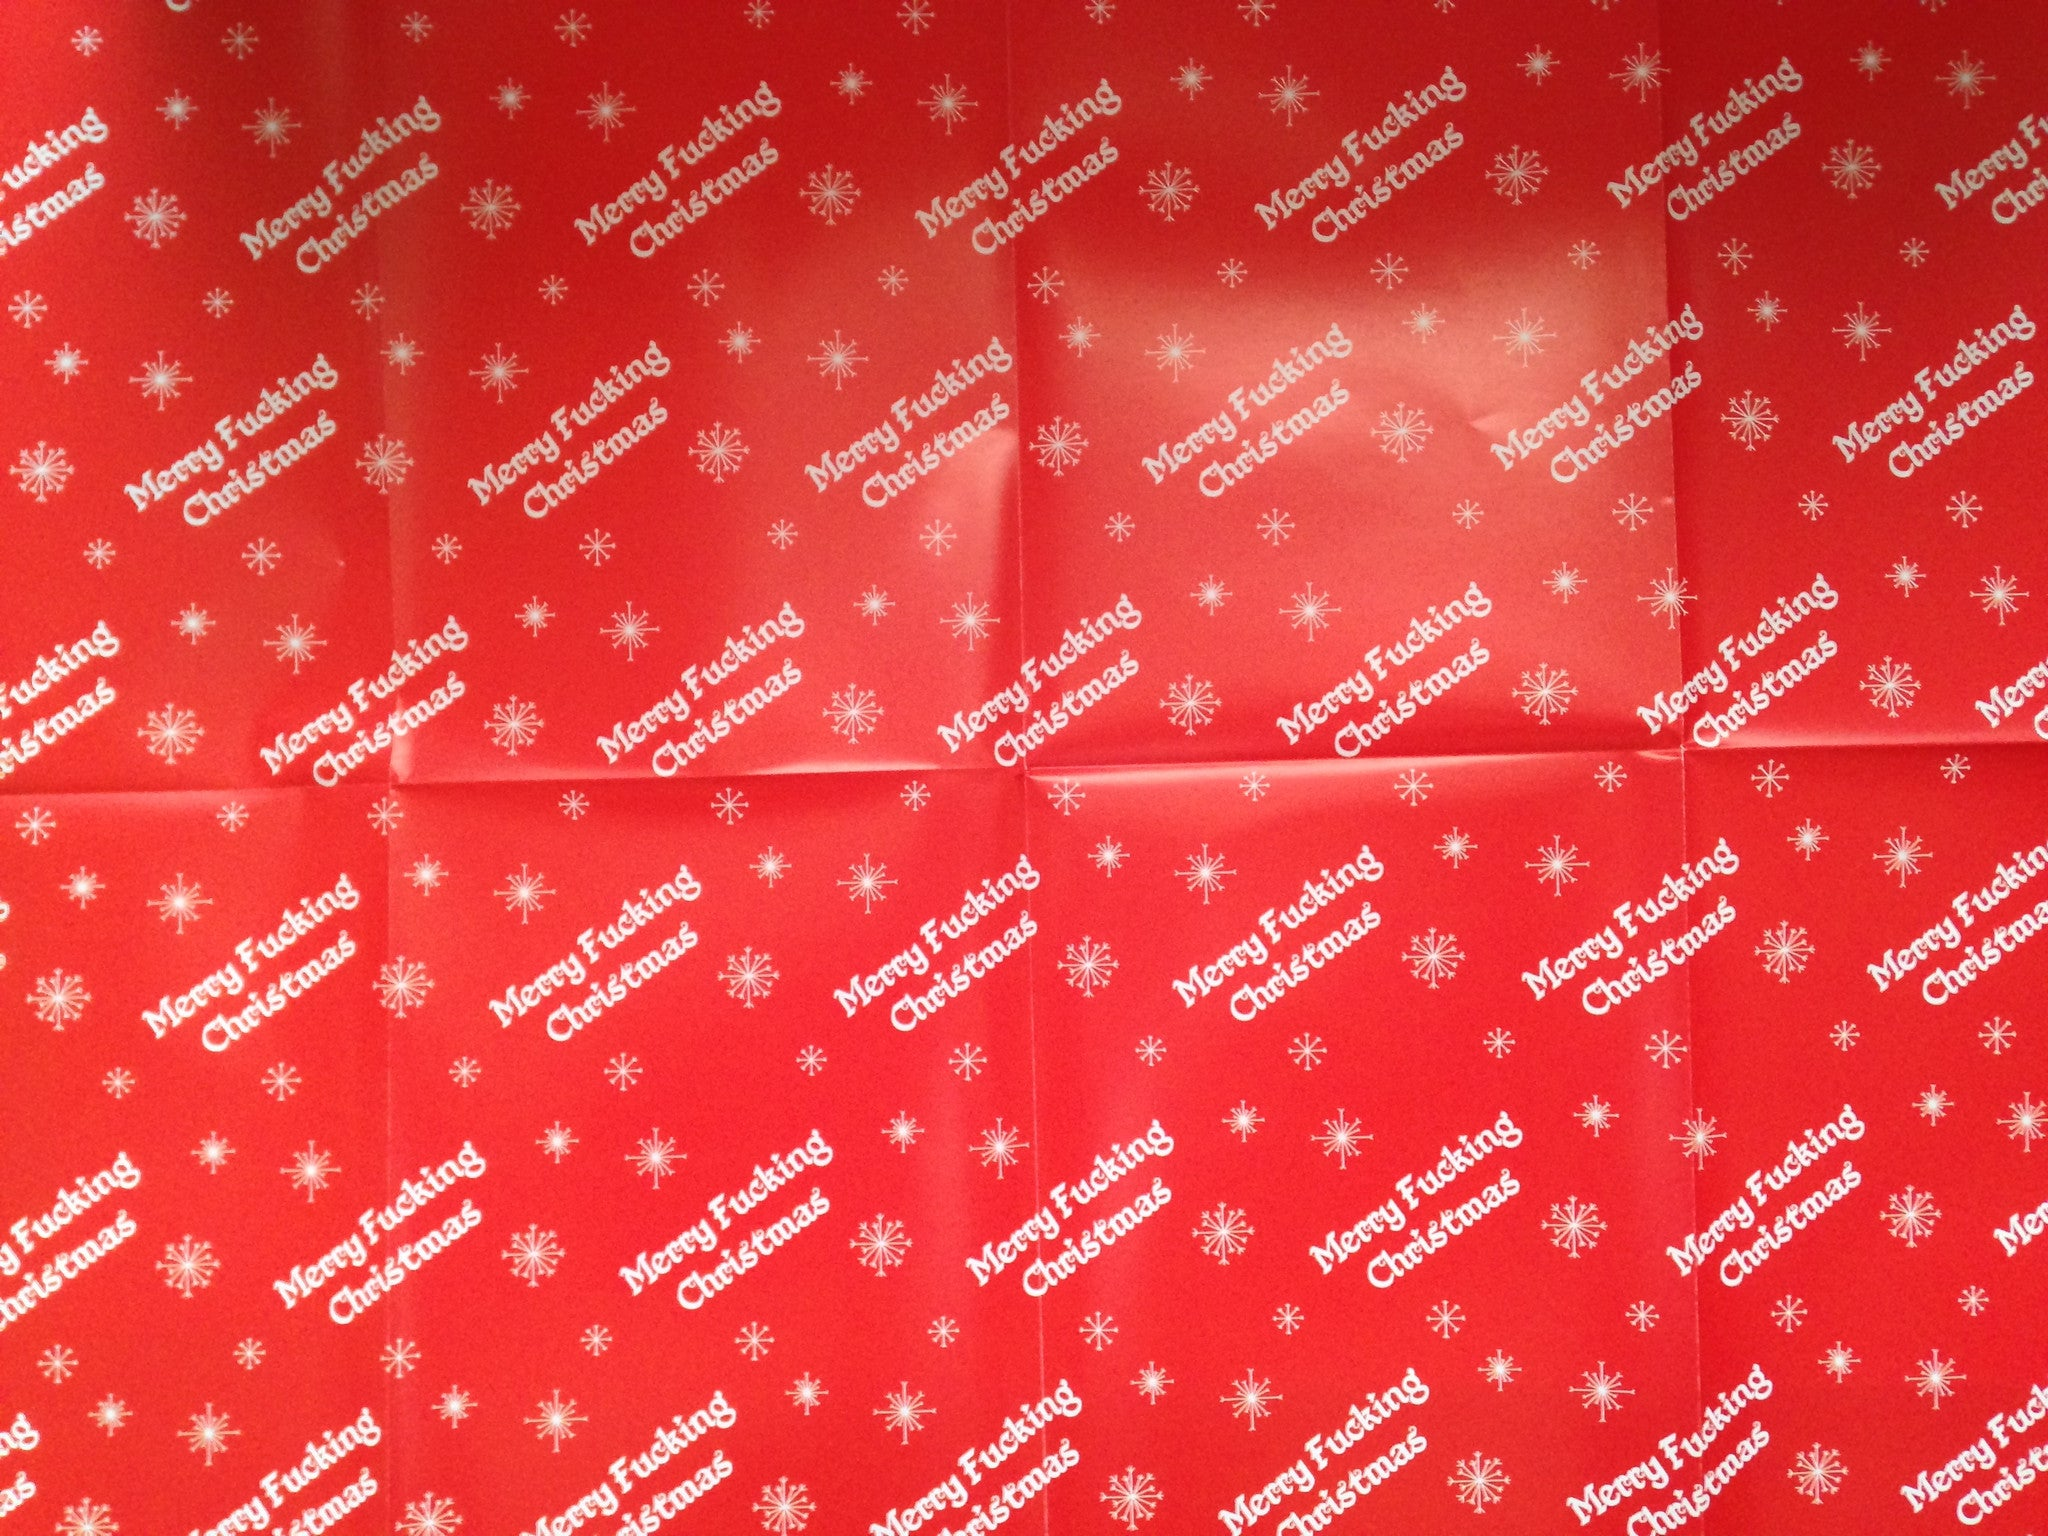 Merry fucking Christmas wrapping paper pack - Phuckadoodledoo